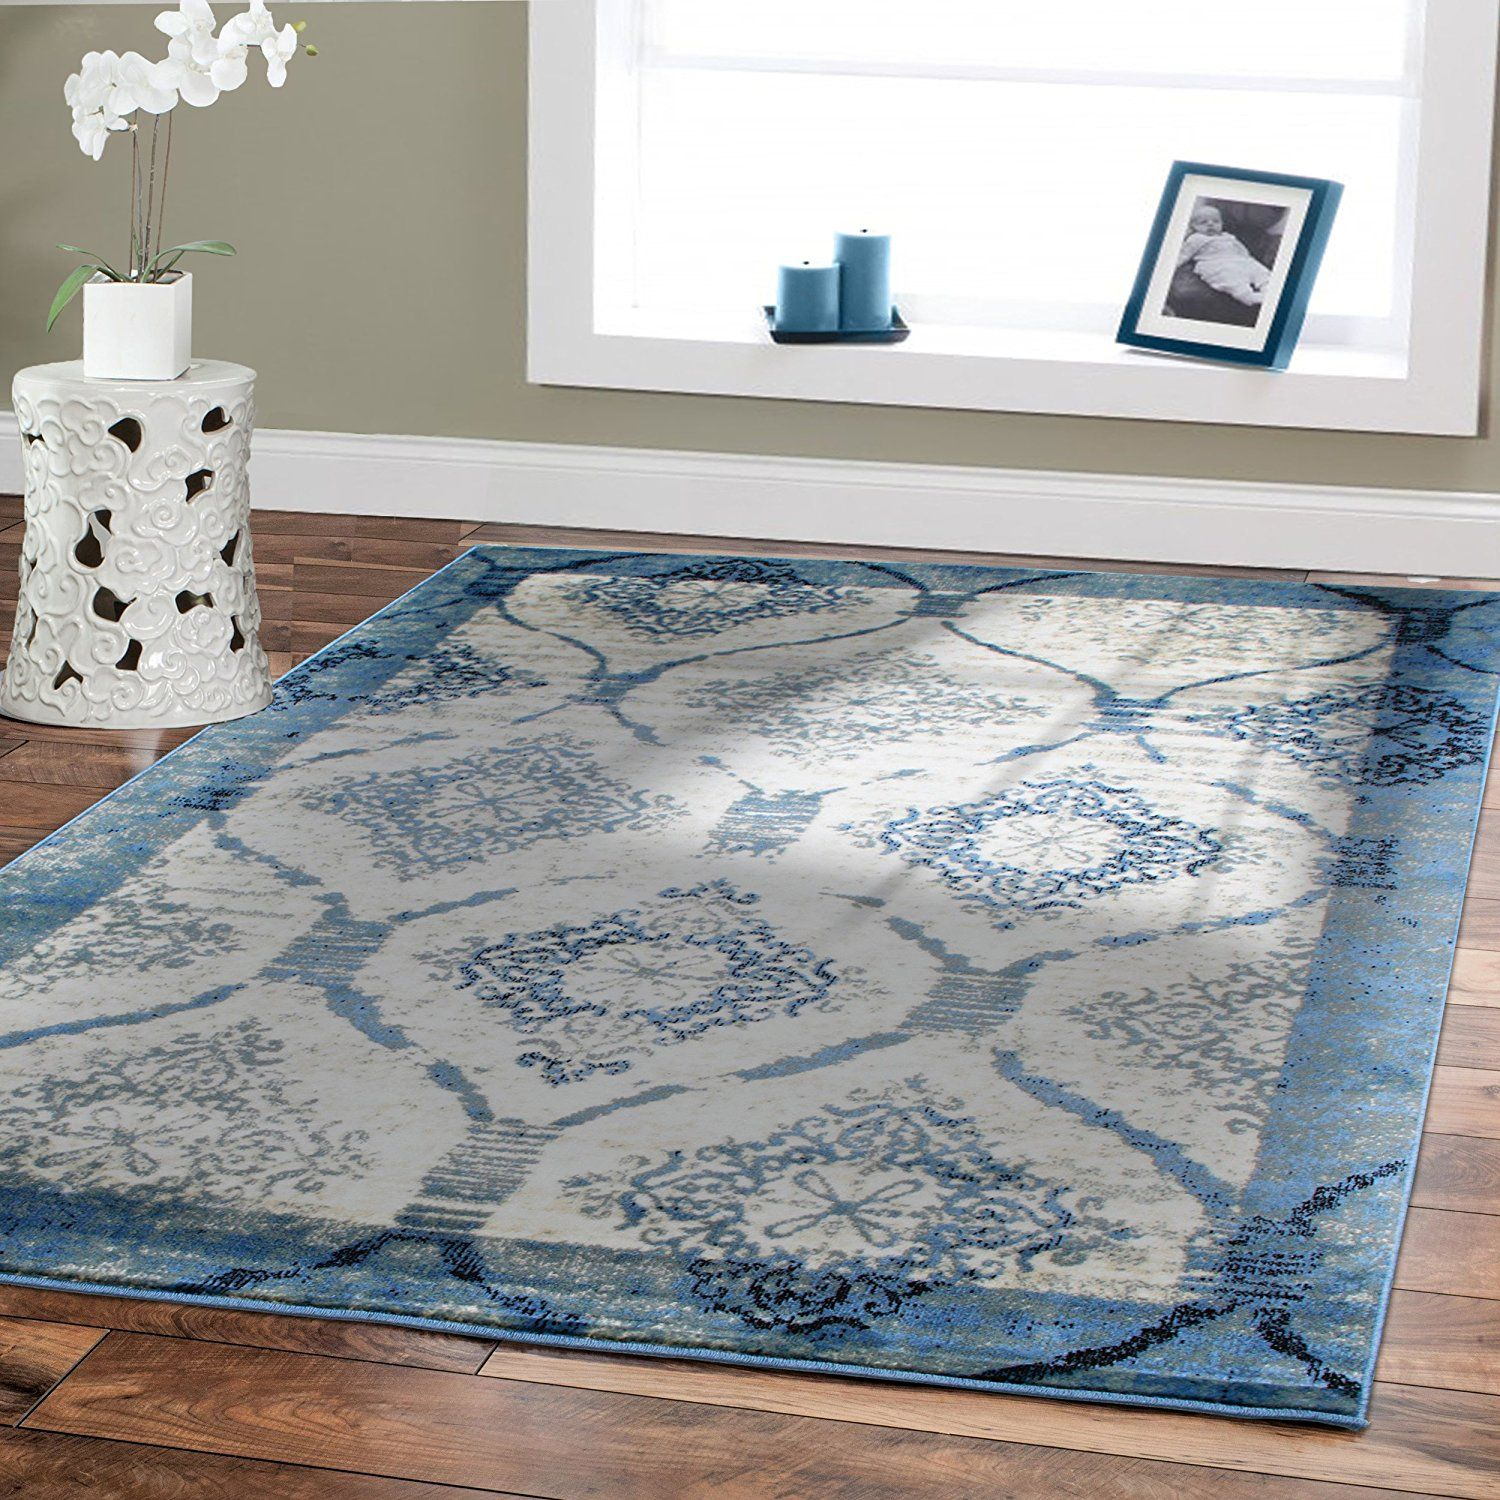 Premium Soft Area Rugs For Living Room 5x7 Under150 Blue Dining